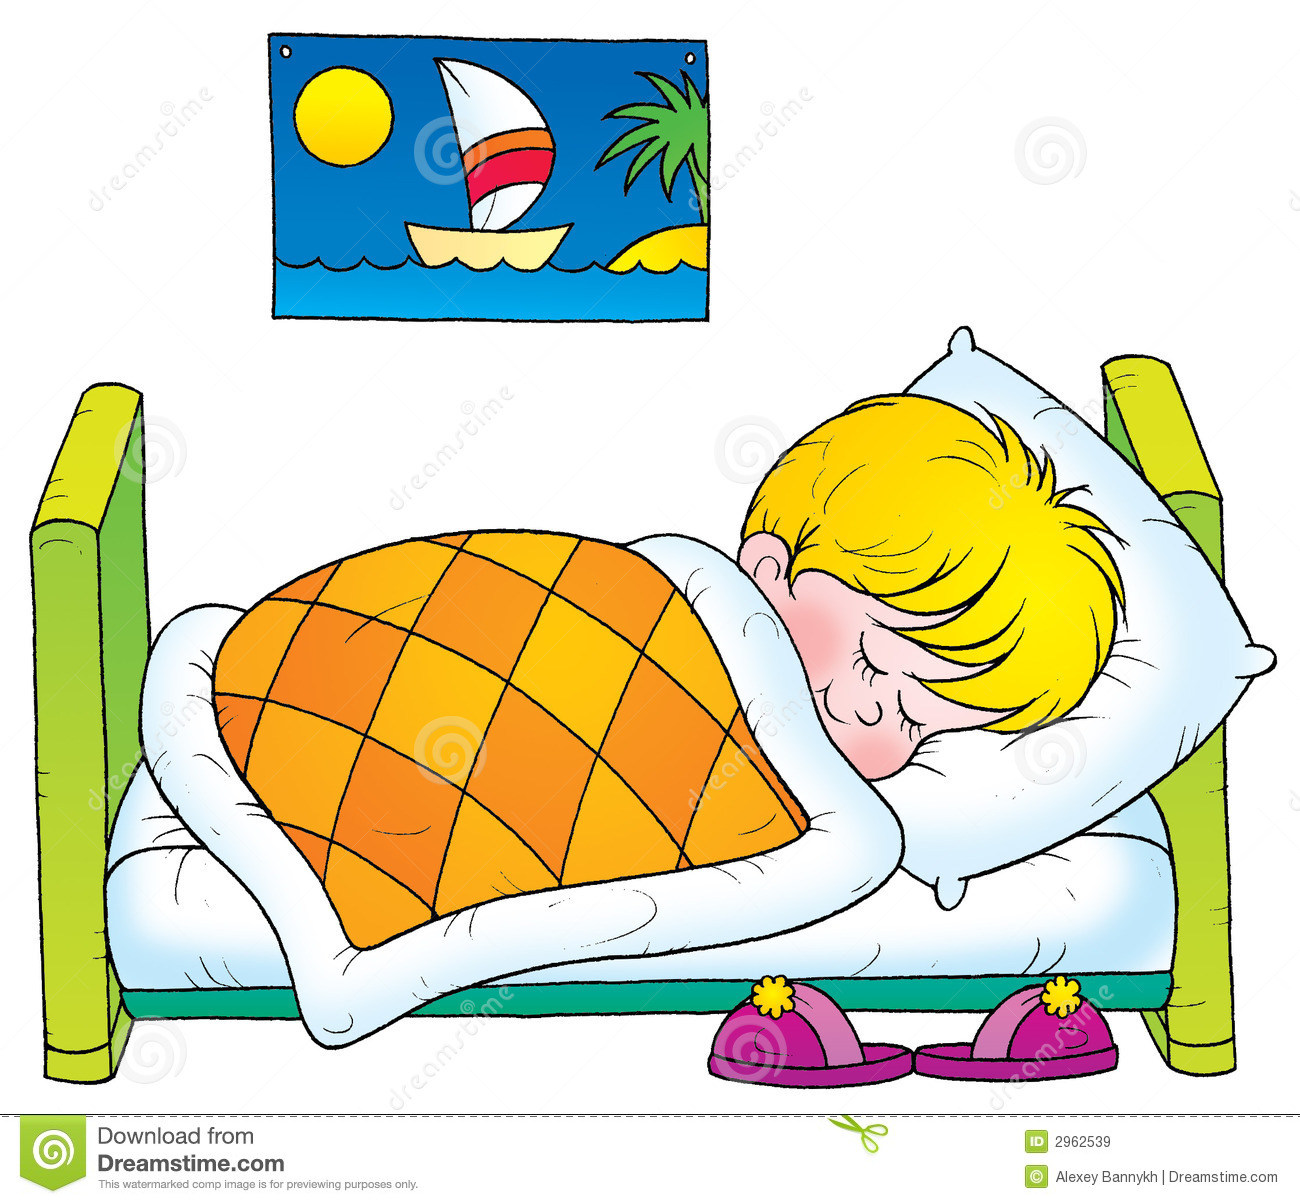 Kids rest time clipart.